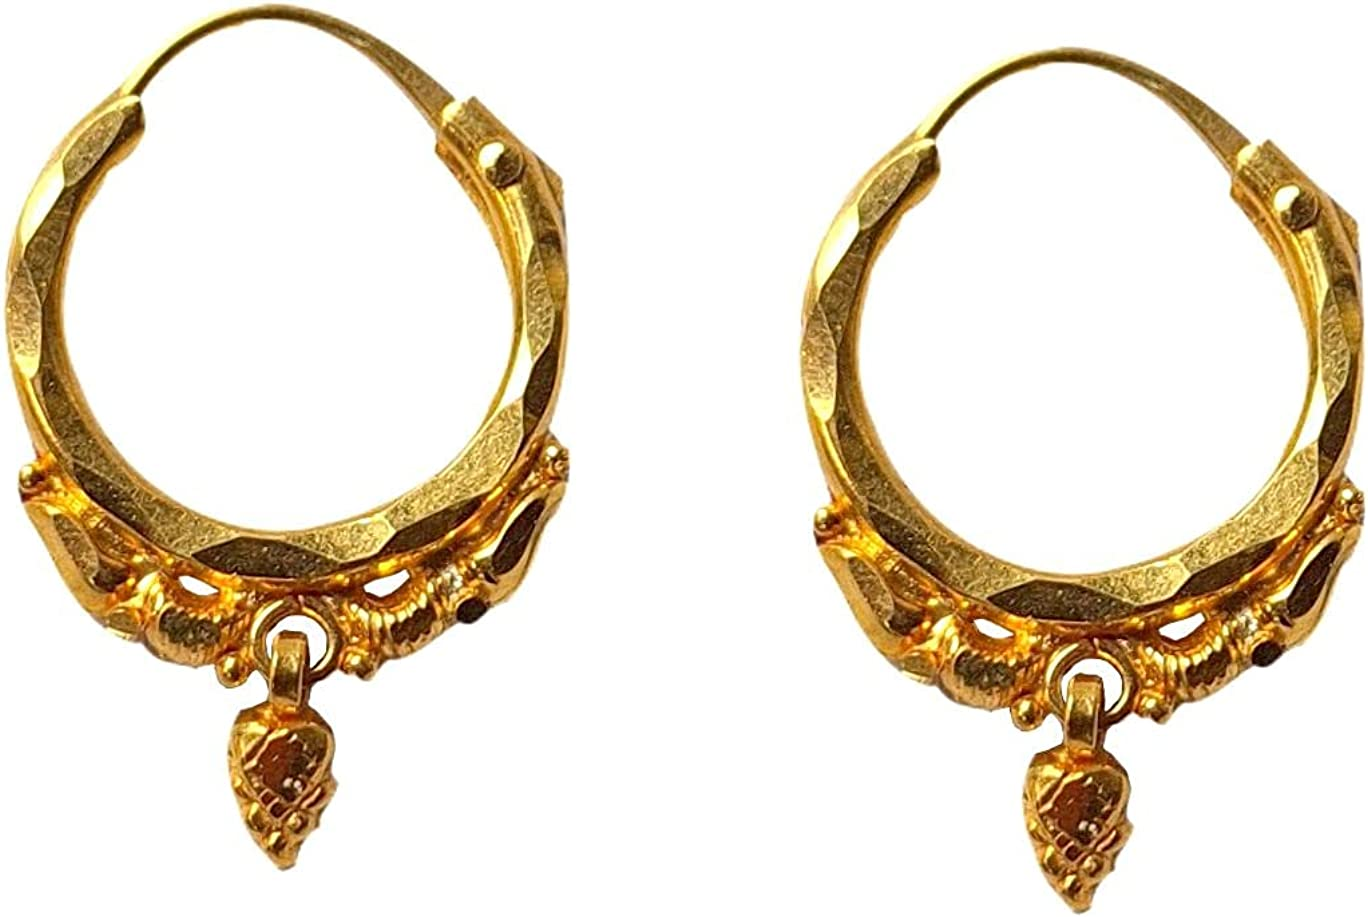 Certified Solid 22K/18K Yellow Fine Gold Gorgeous Carved Design Hoop Earrings Available In Both 22 Carat And 18 Carat Fine Gold, For Women,Girls,Kids,Gifts,Bridal,Wedding,Engagement & Celebrations